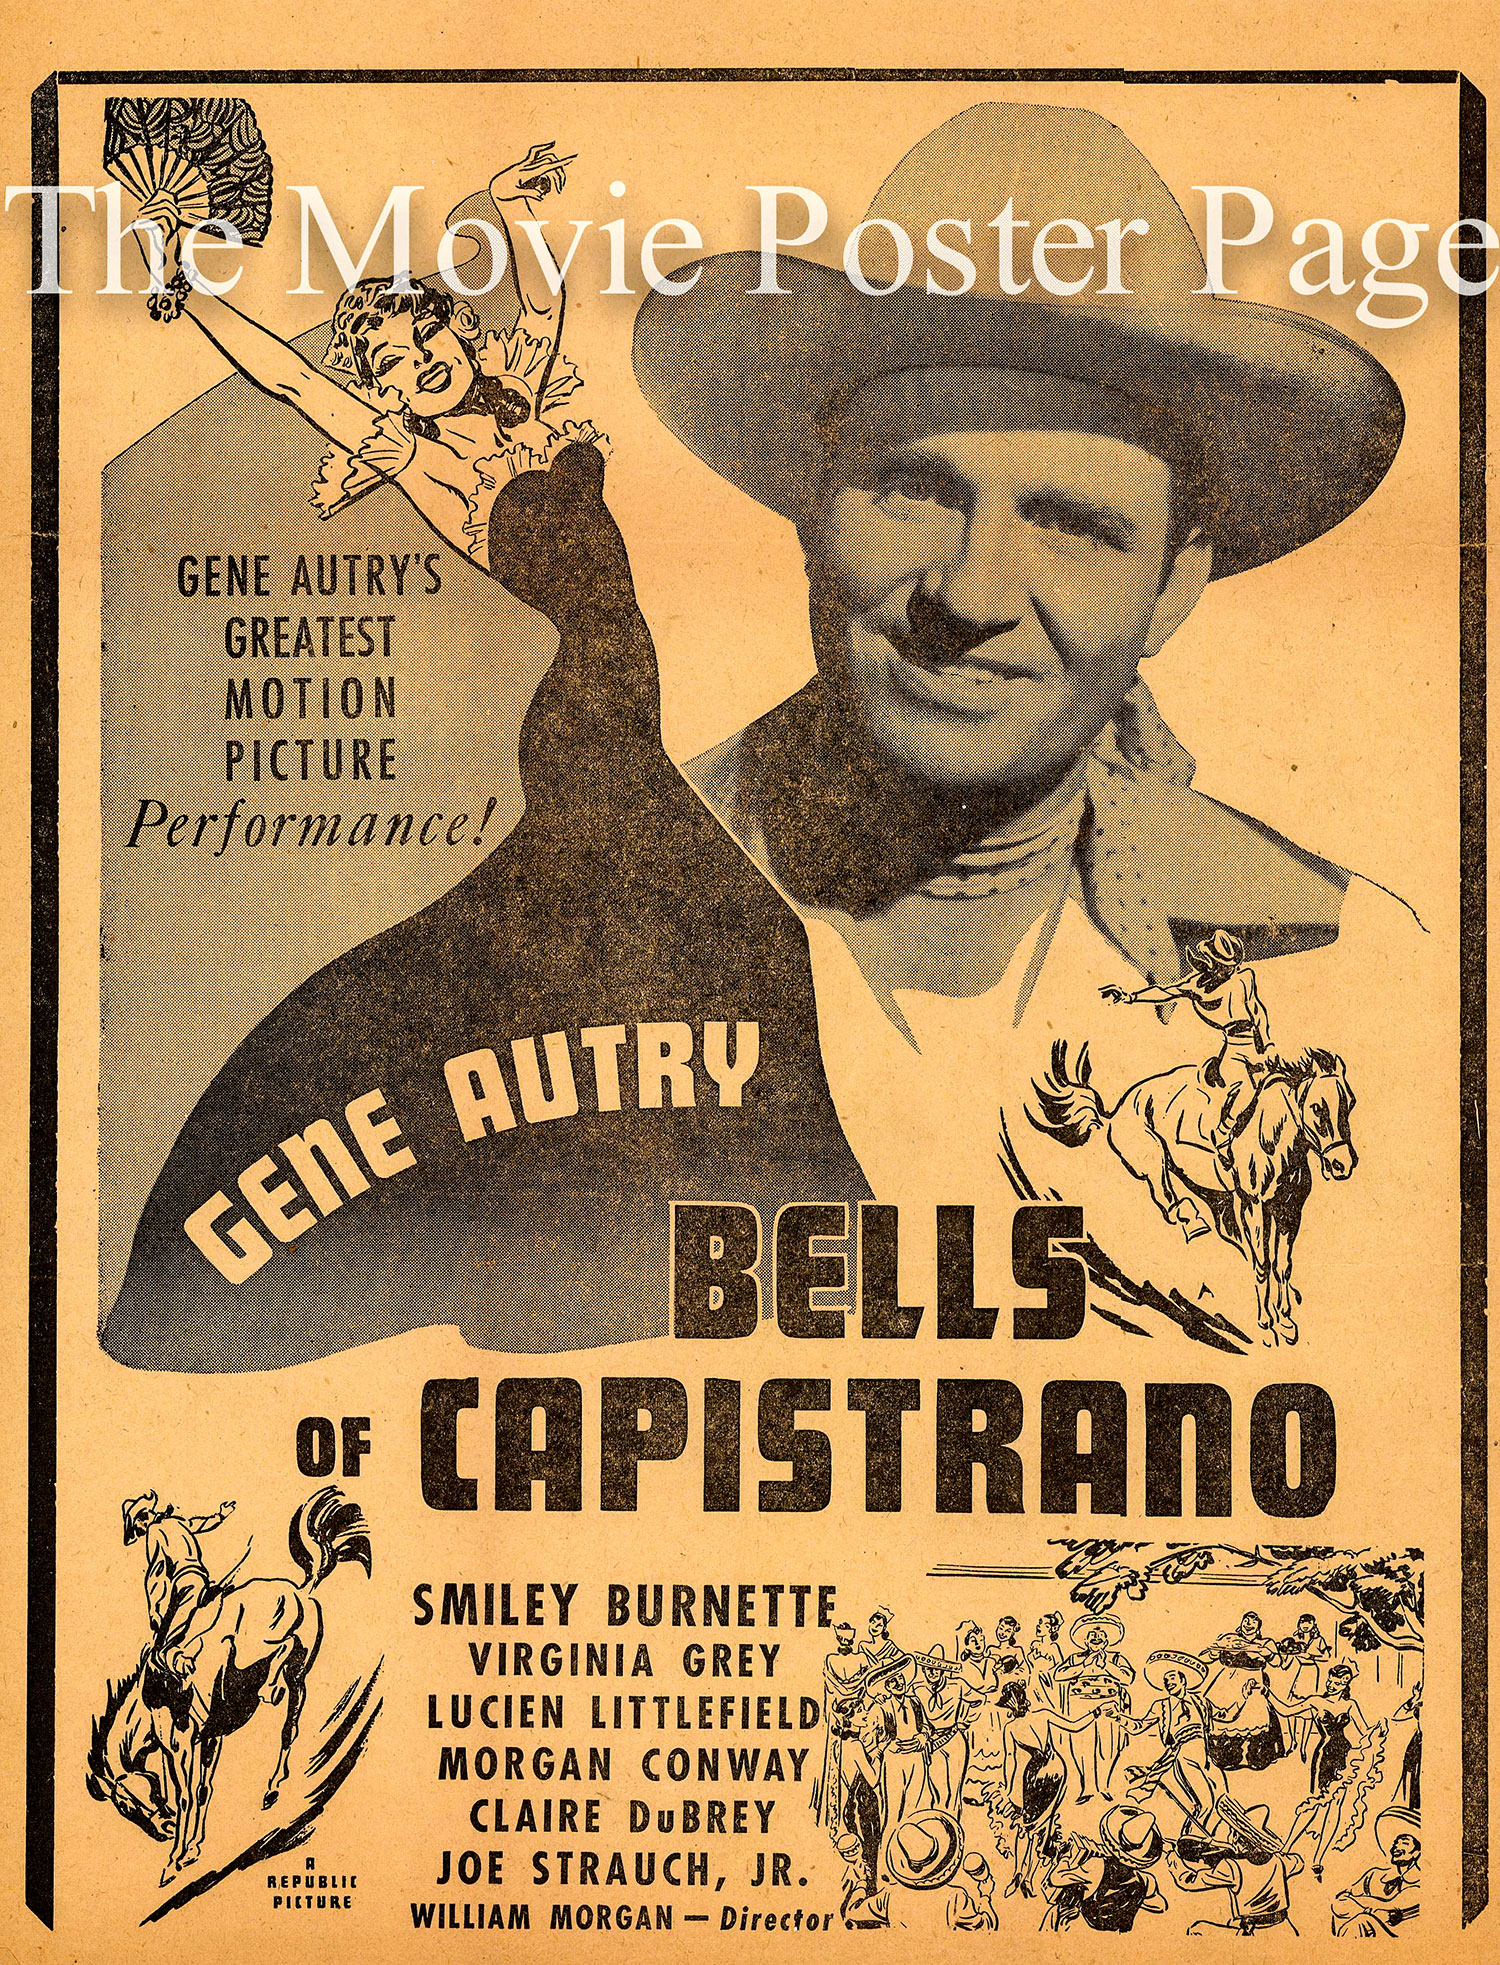 Pictured is a US newsprint herald for the 1942 William Morgan film the Bells of Capistrano starring Gene Autry.